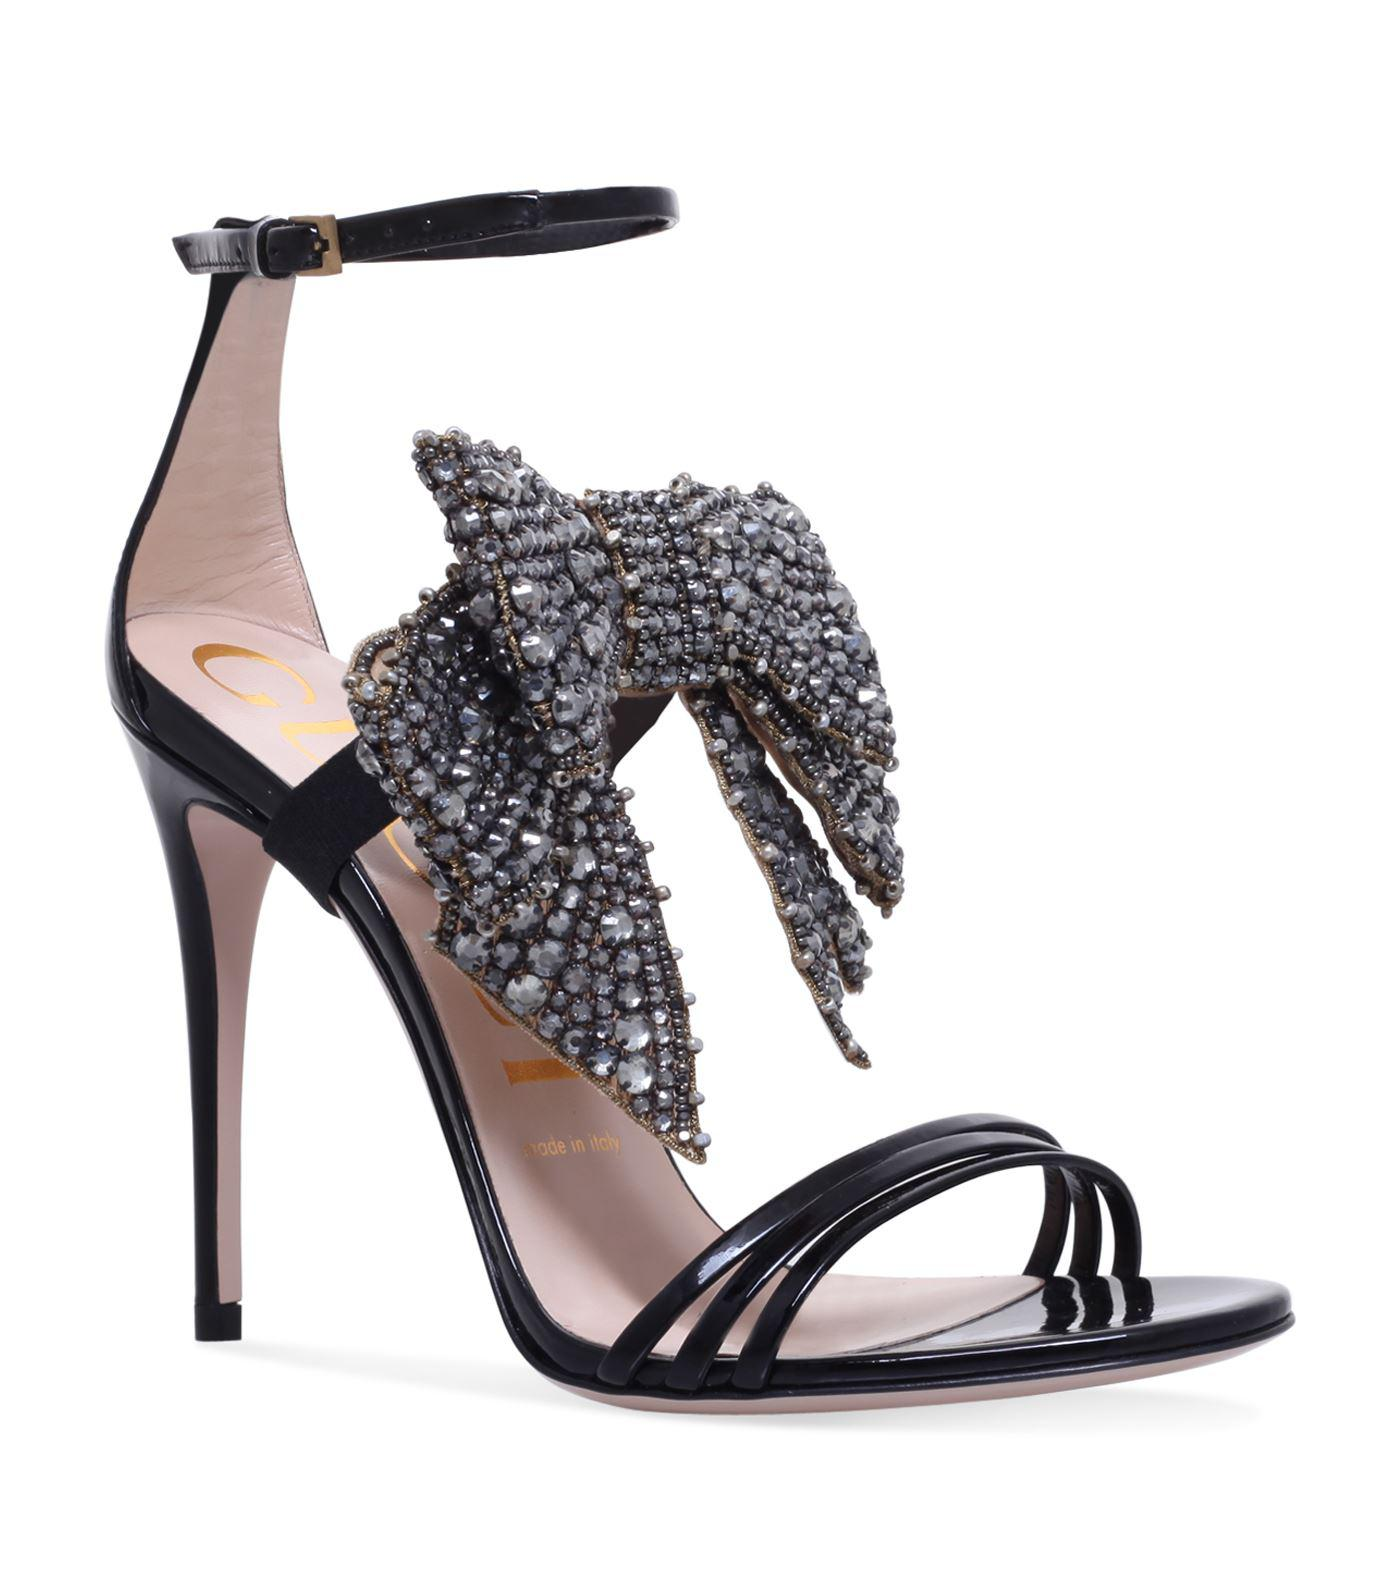 b5177438a520 Gucci Ilse Bow Sandals 110 in Black - Lyst